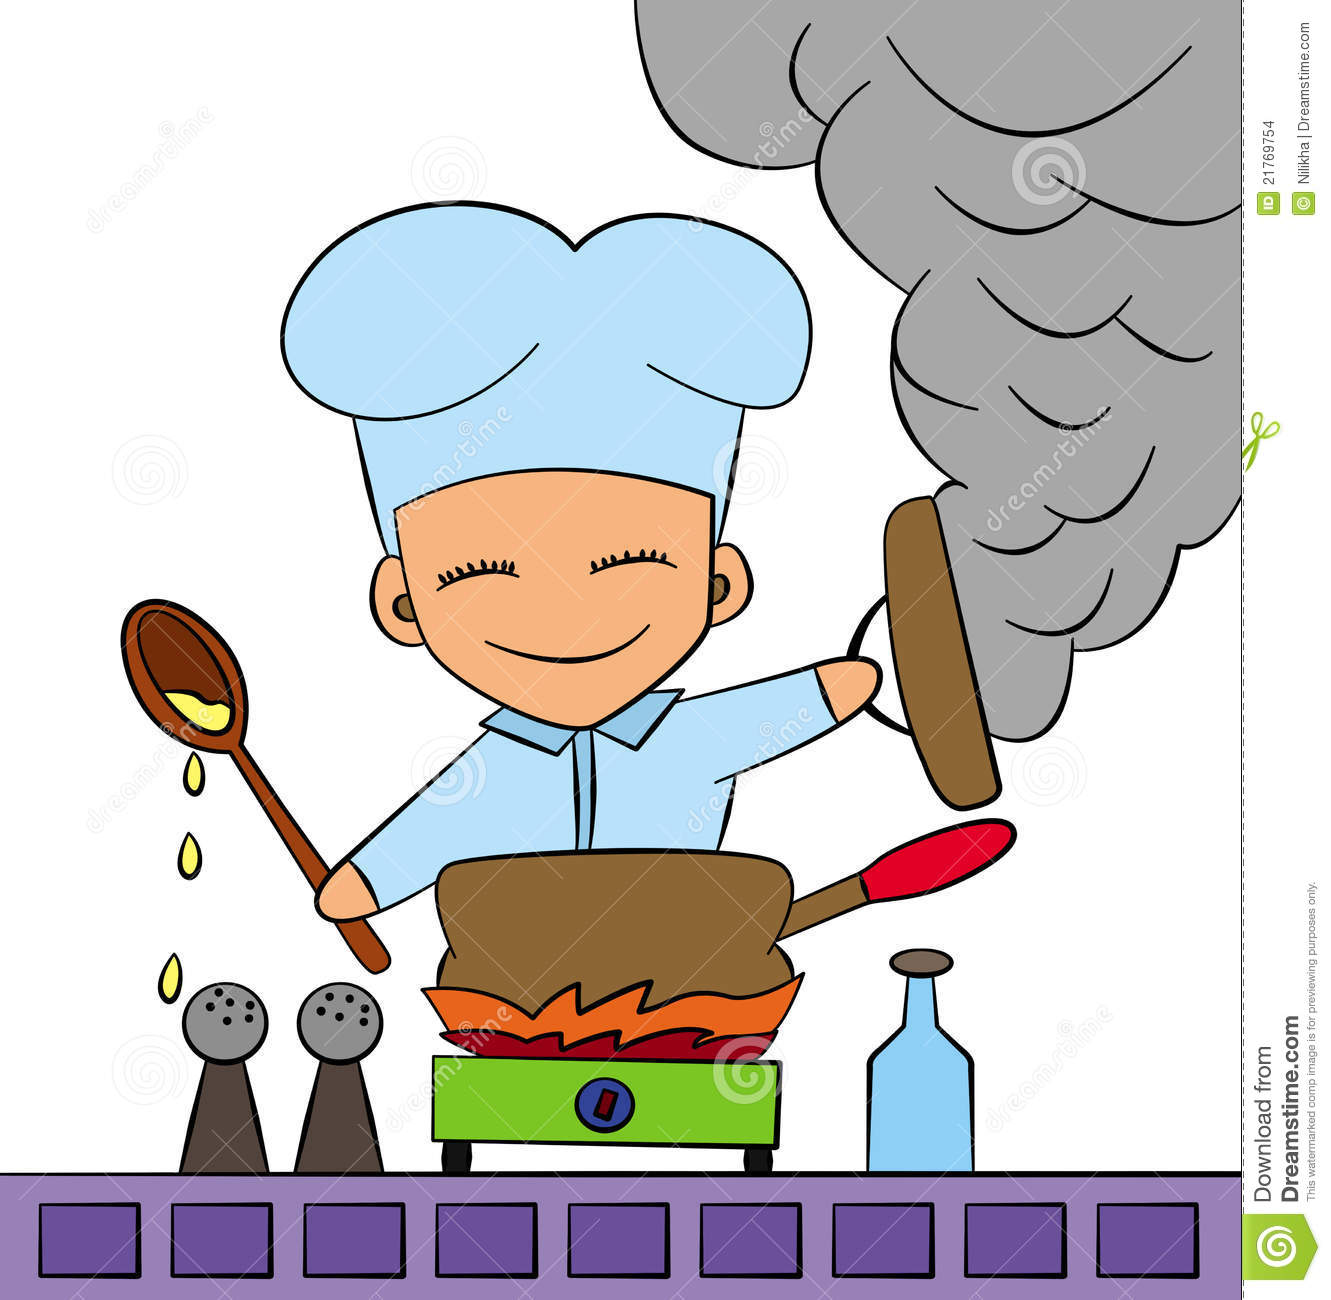 Cartoon Chef Cooking Chef-21769754.jpg